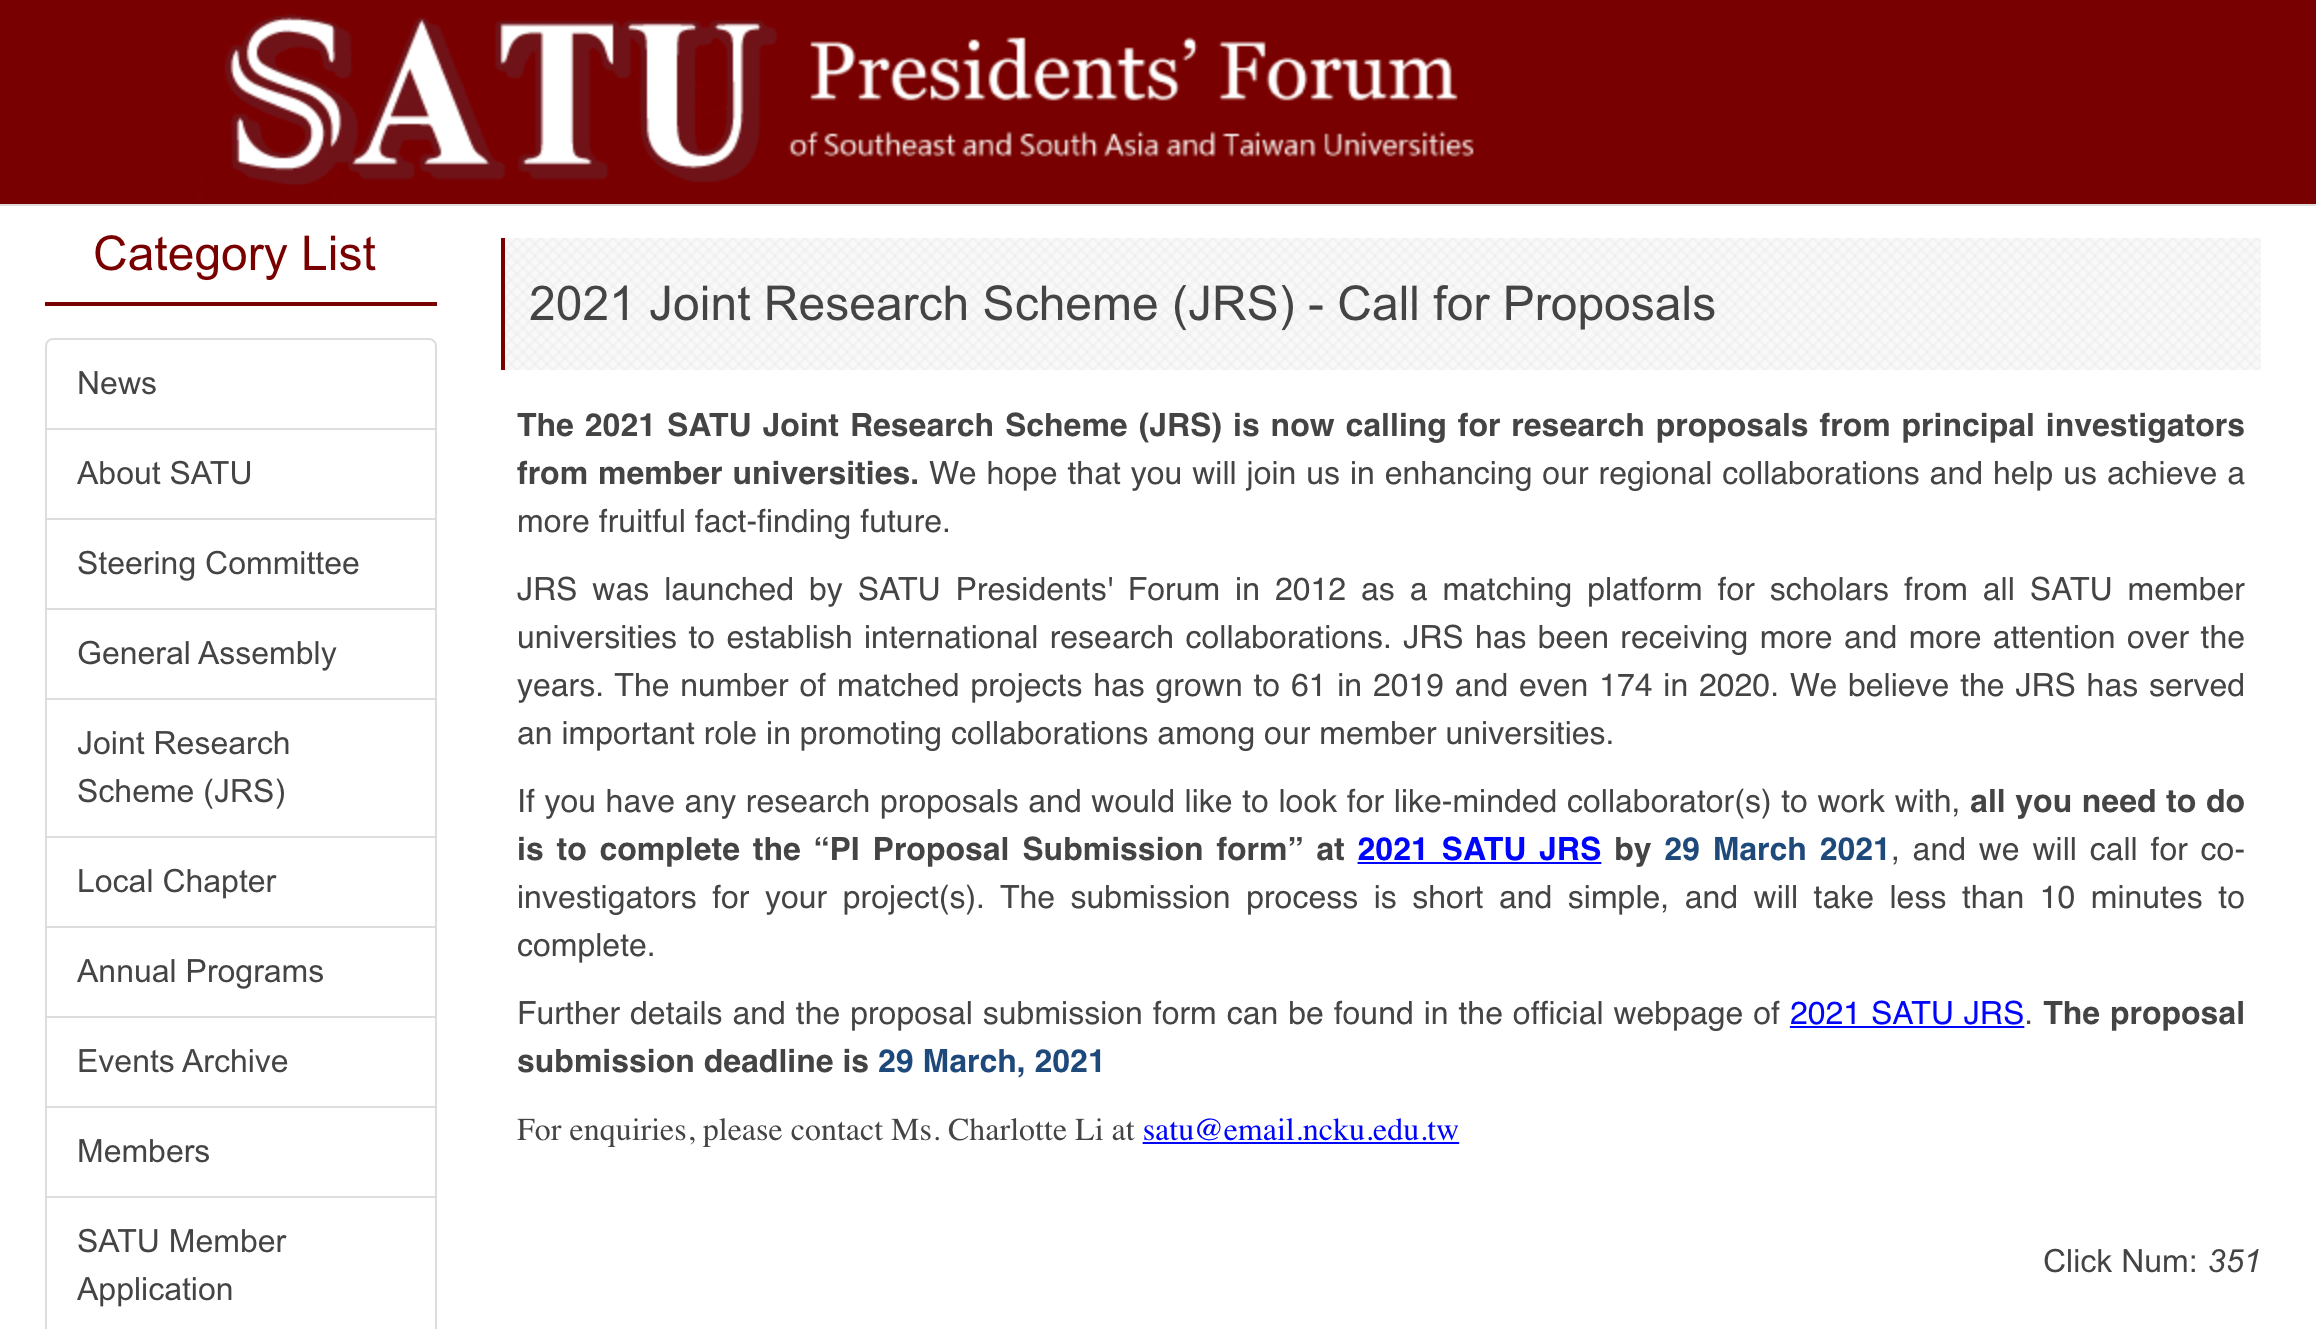 2021 Joint Research Scheme (JRS) – Call for Proposals